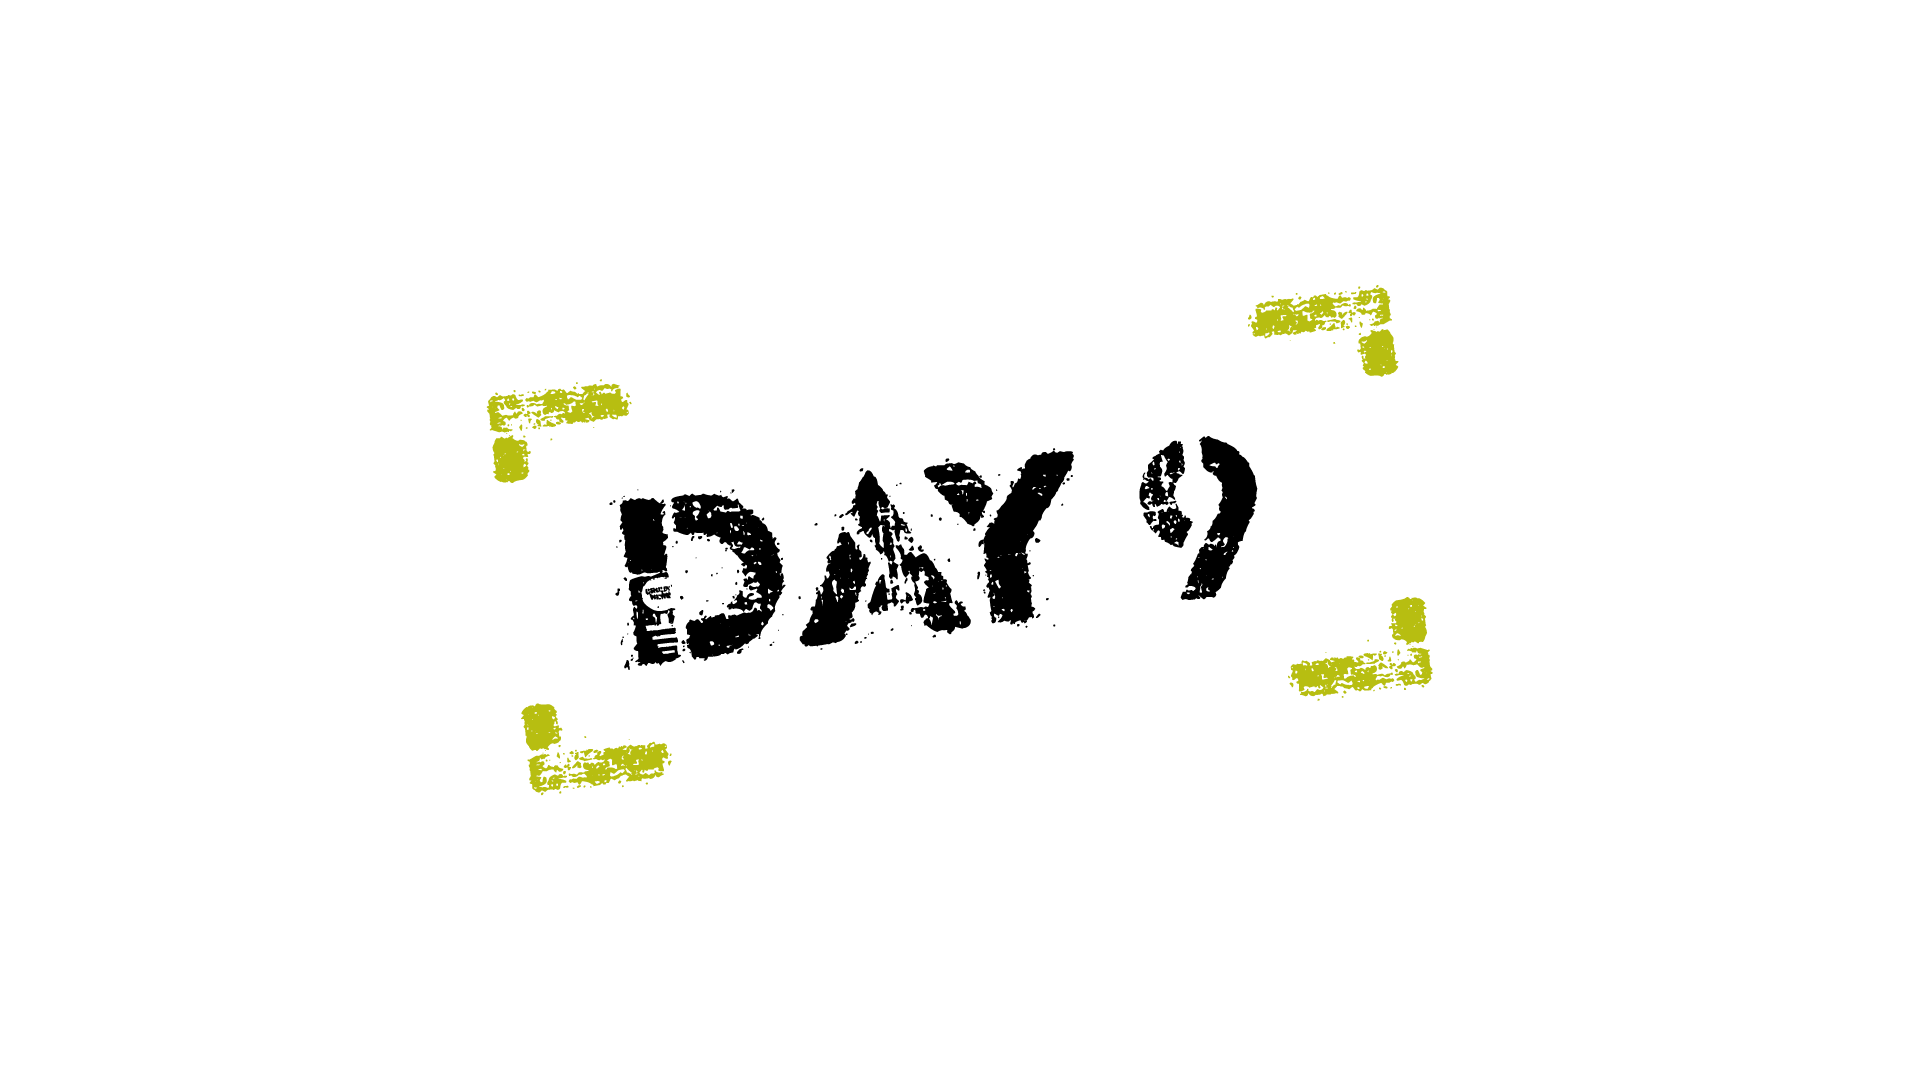 Day 9_1